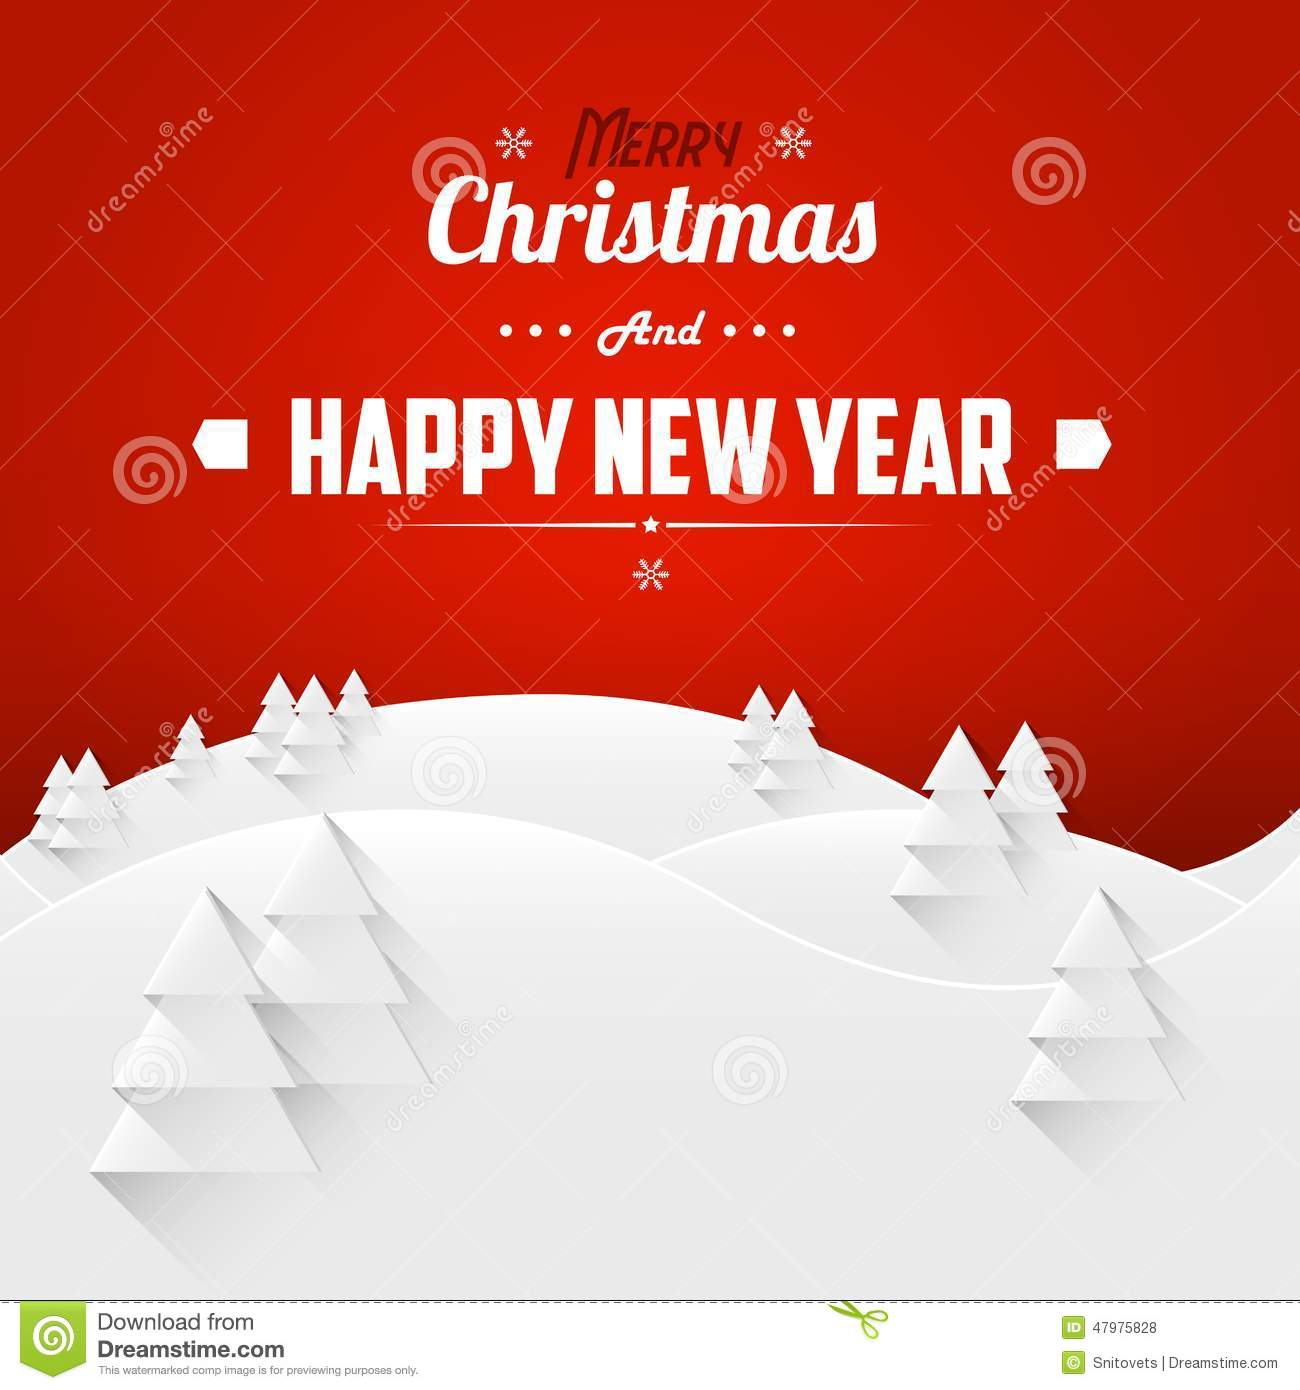 Merry Christmas And Happy New Year Landscape Greeting Card Retro